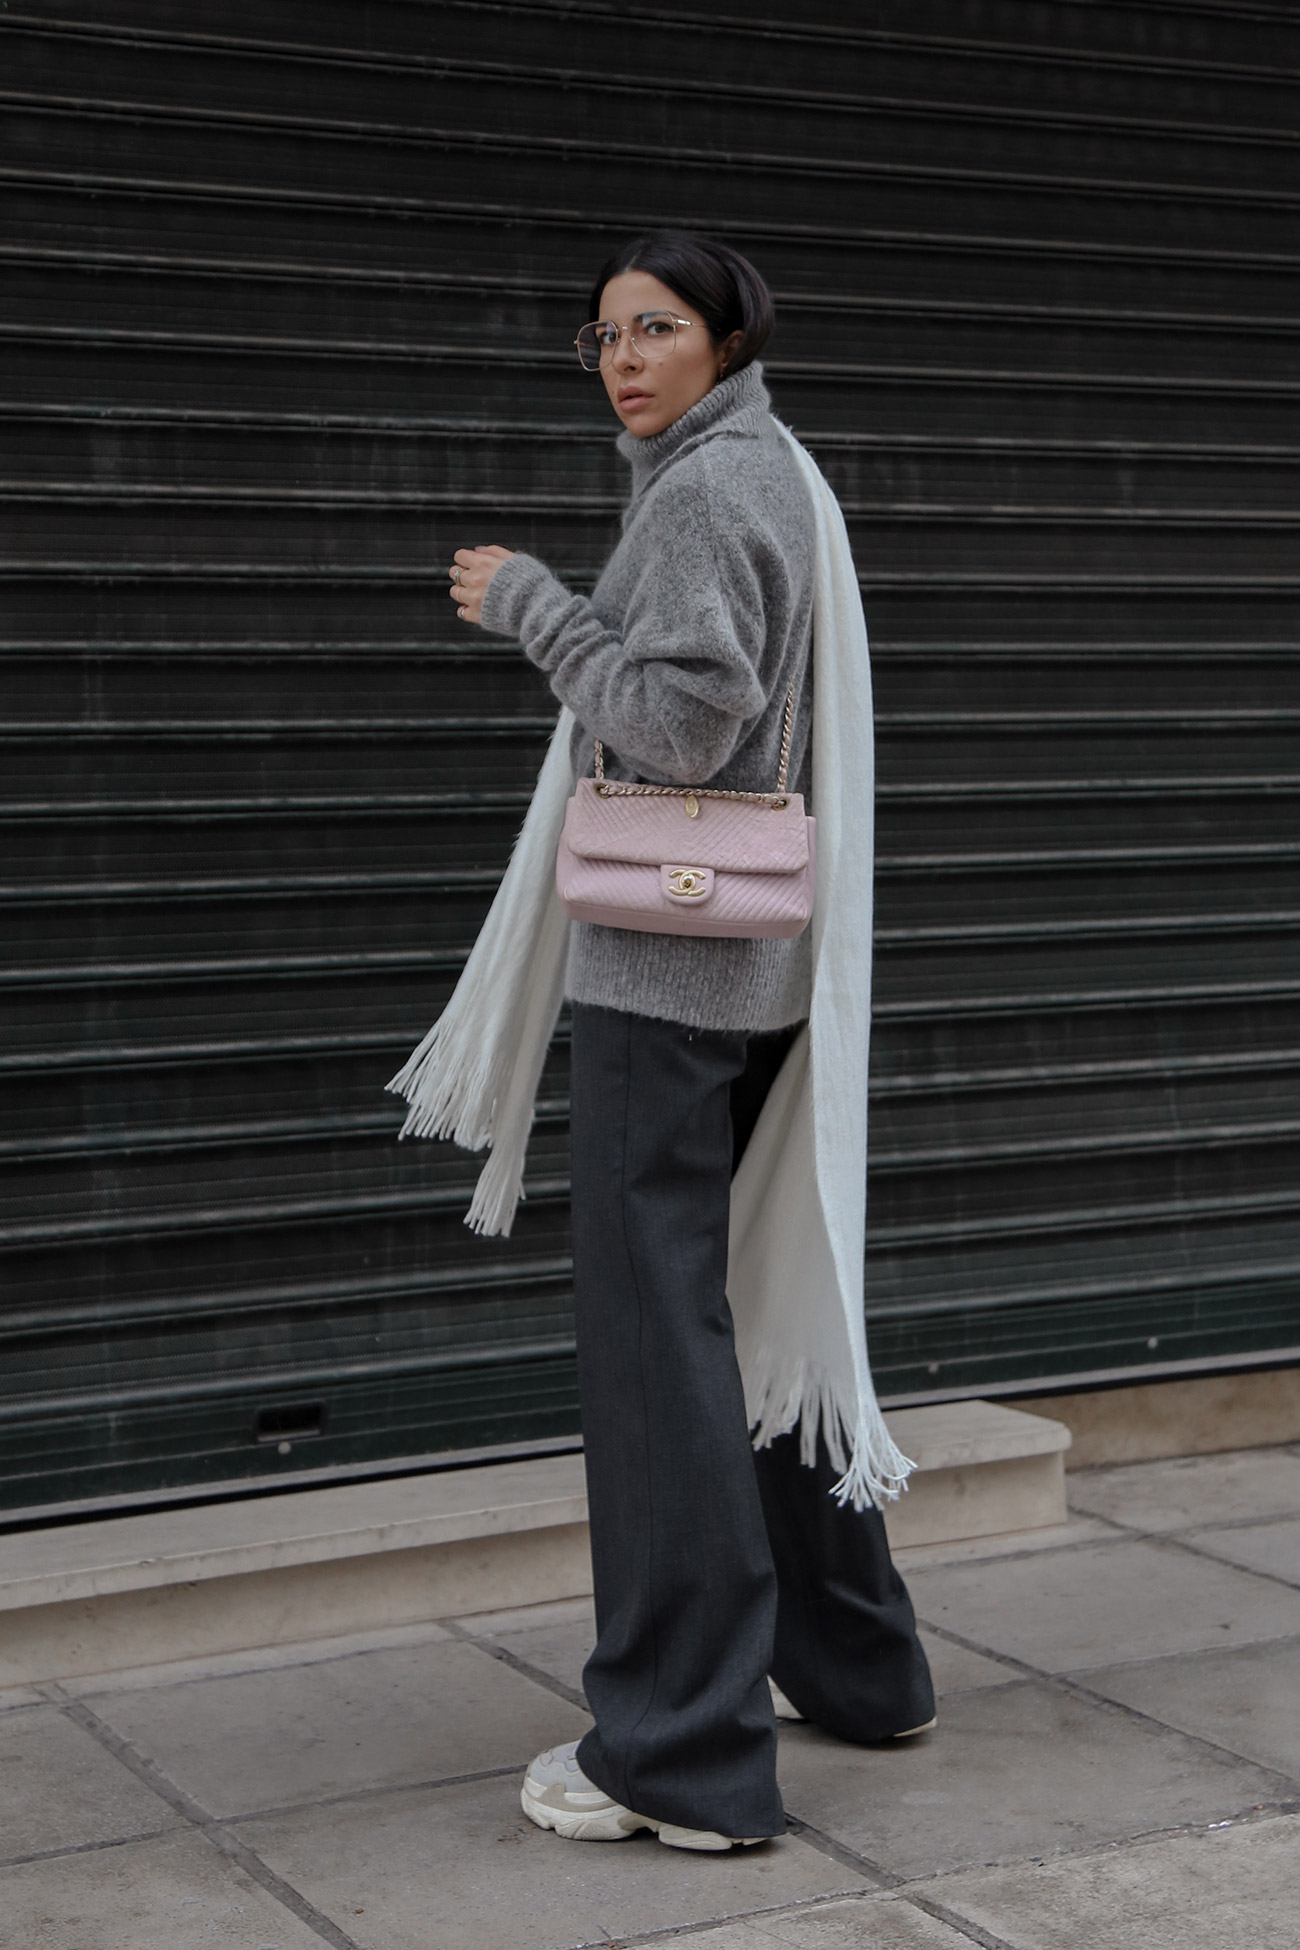 Stella Asteria wearing suit pants wth sweater, sneakers and Chanel bag